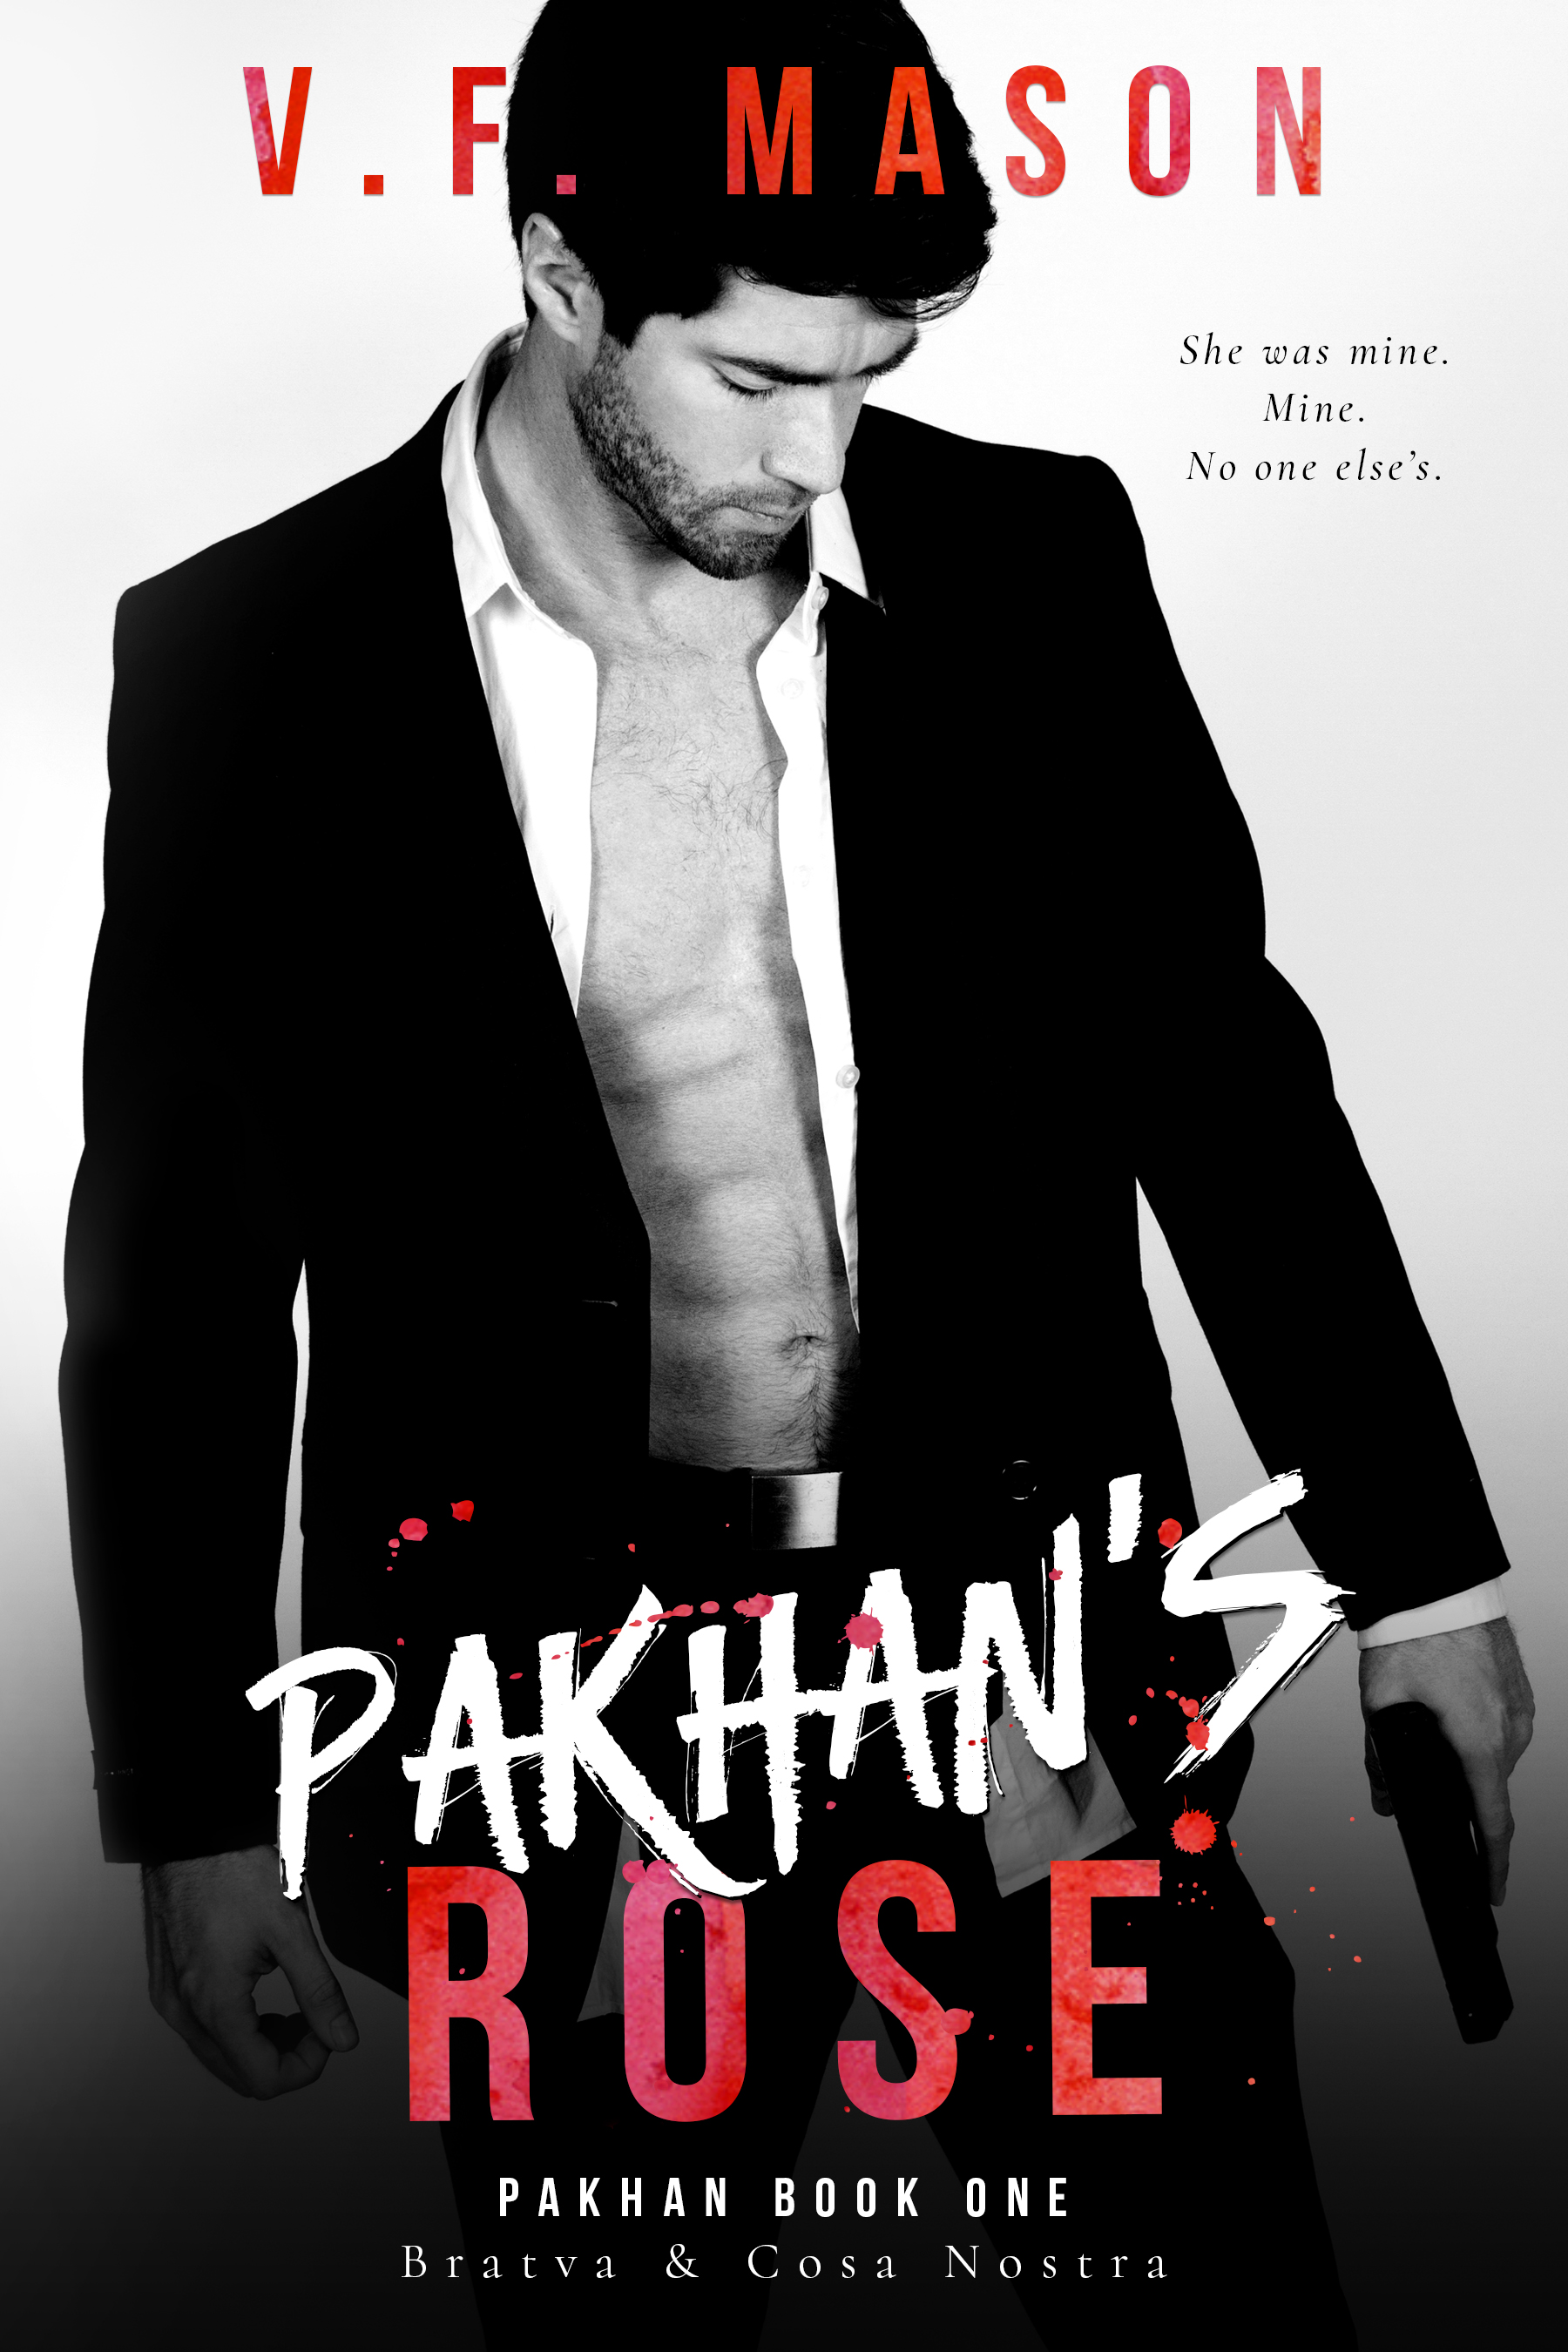 pakhansrose_frontcover